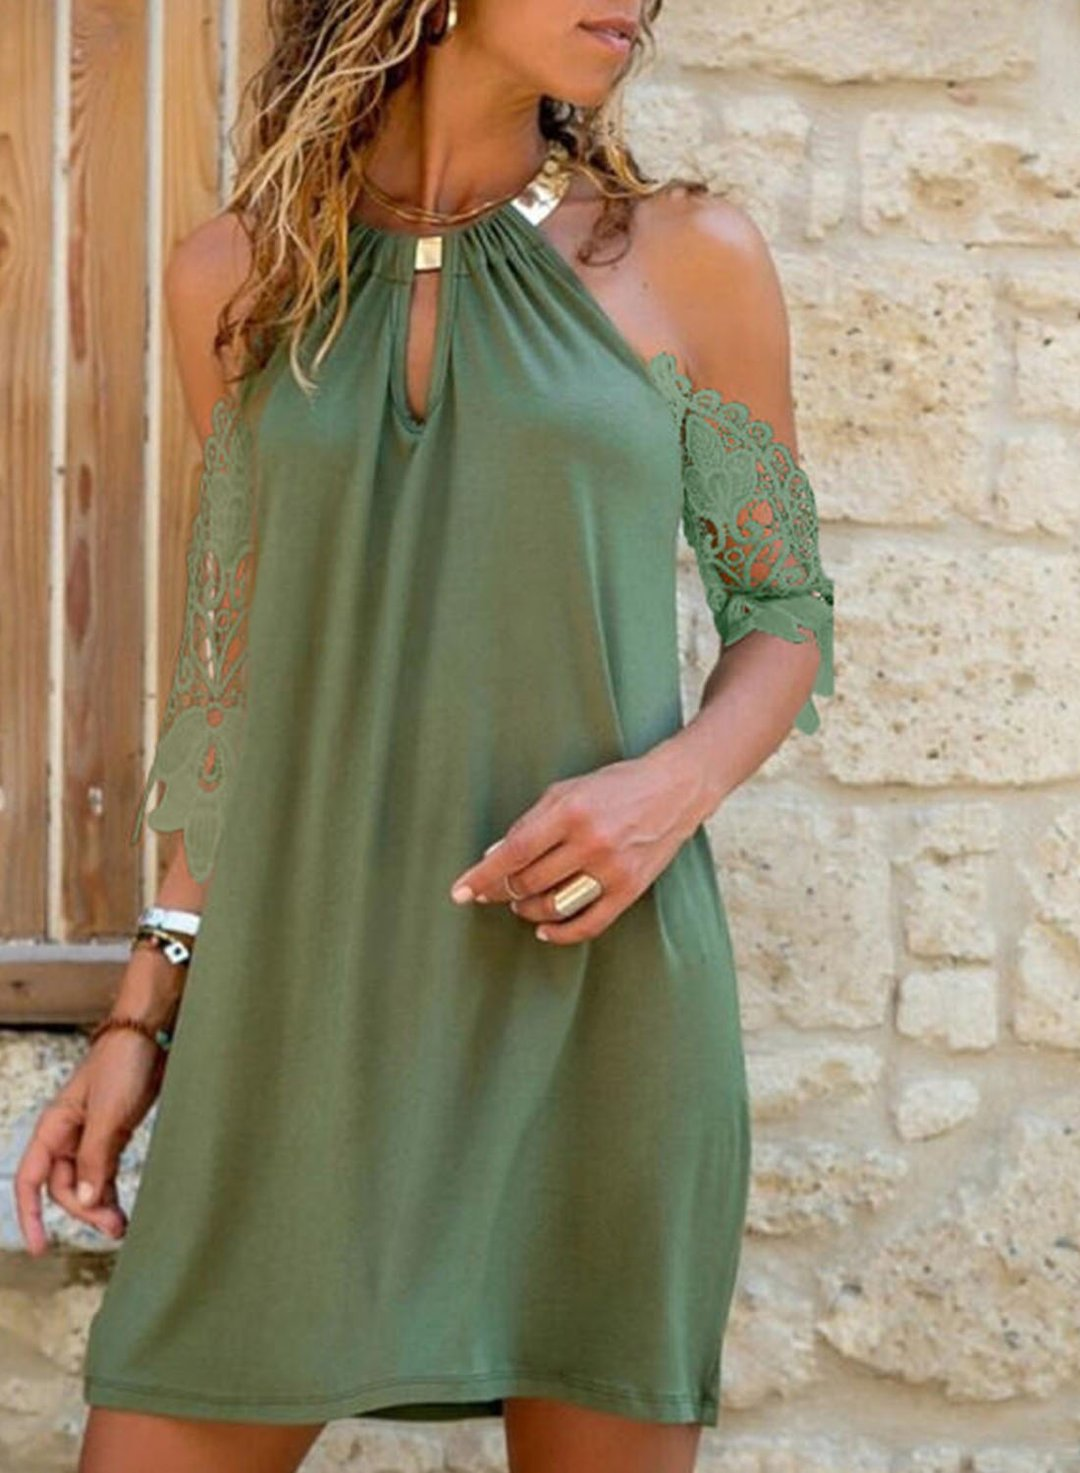 Green Women's Mini Dresses Lace Halter Cold Shoulder Half Sleeve Vacation Dress LC225817-9